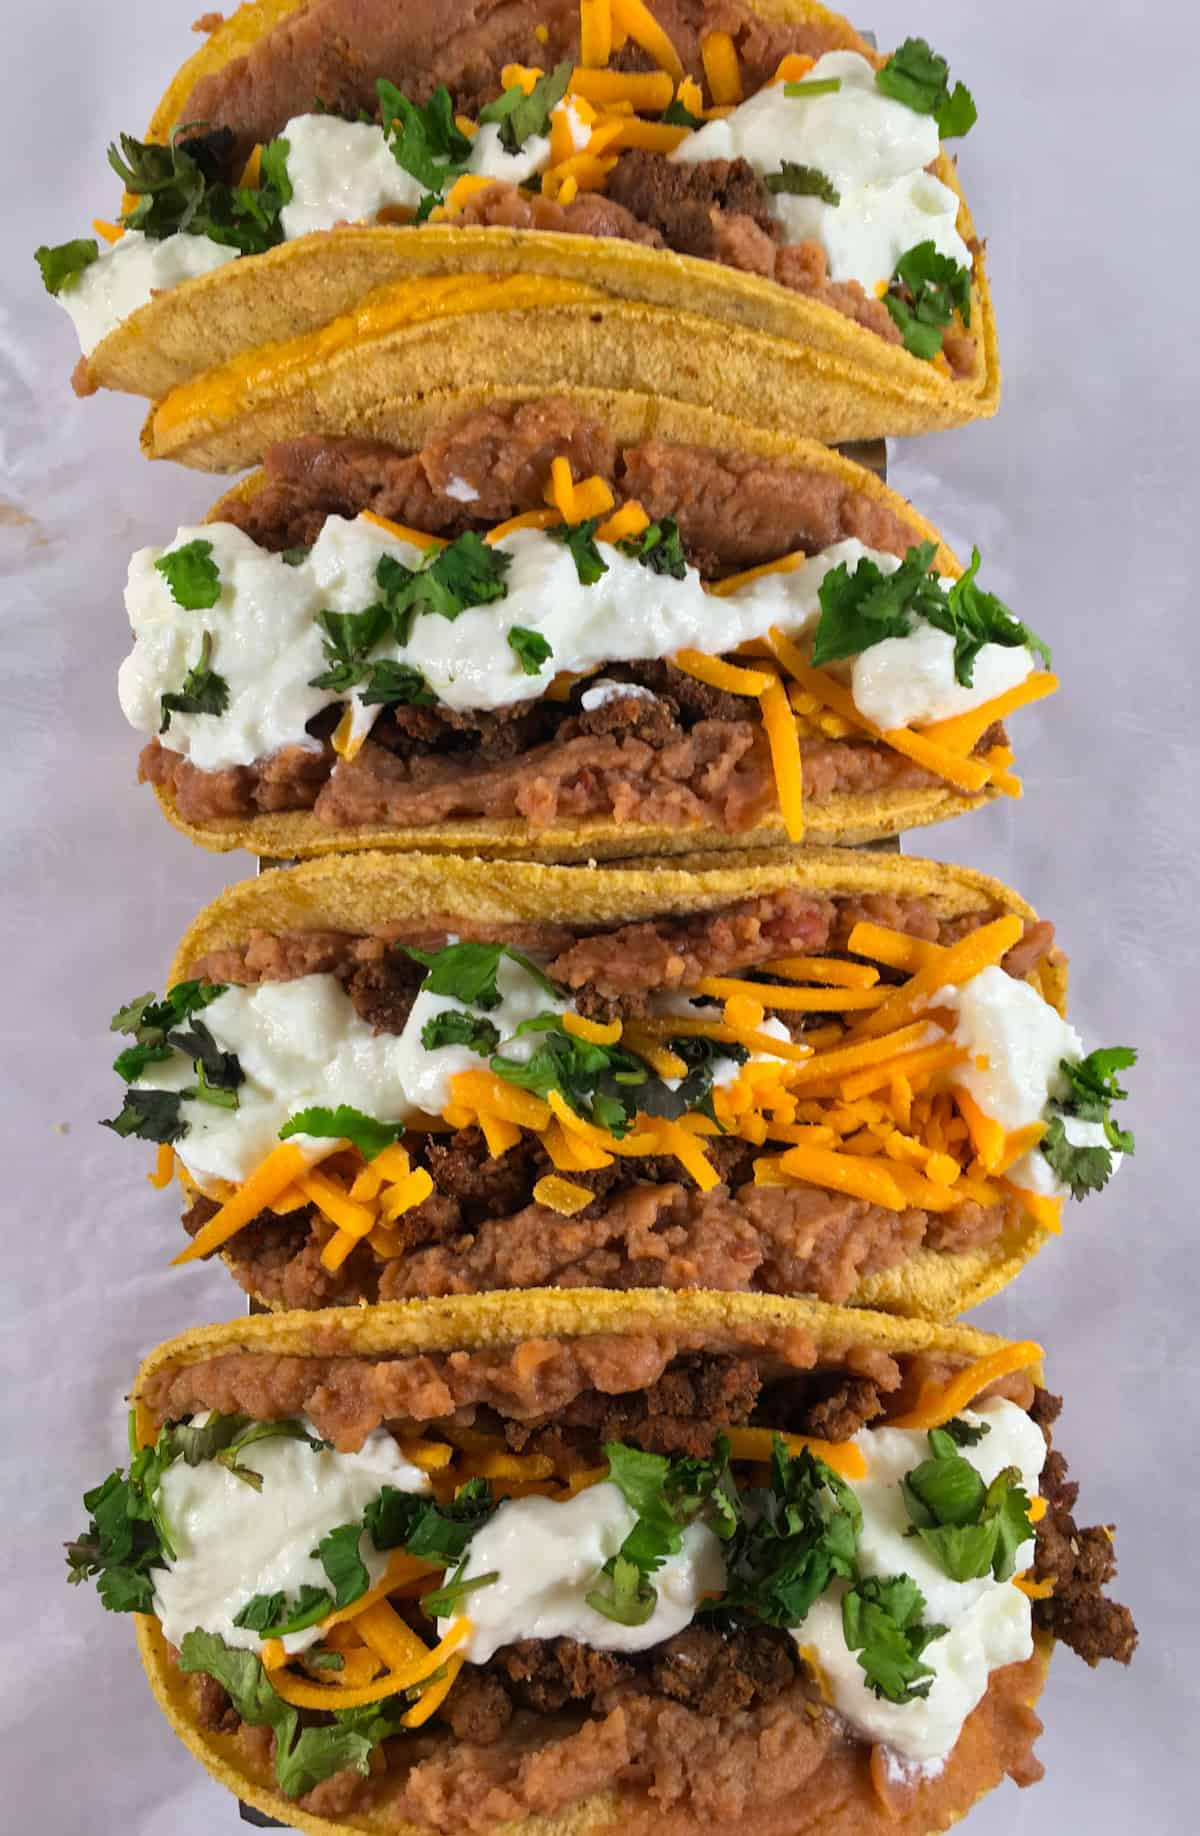 soft tacos with beef and nacho cheese